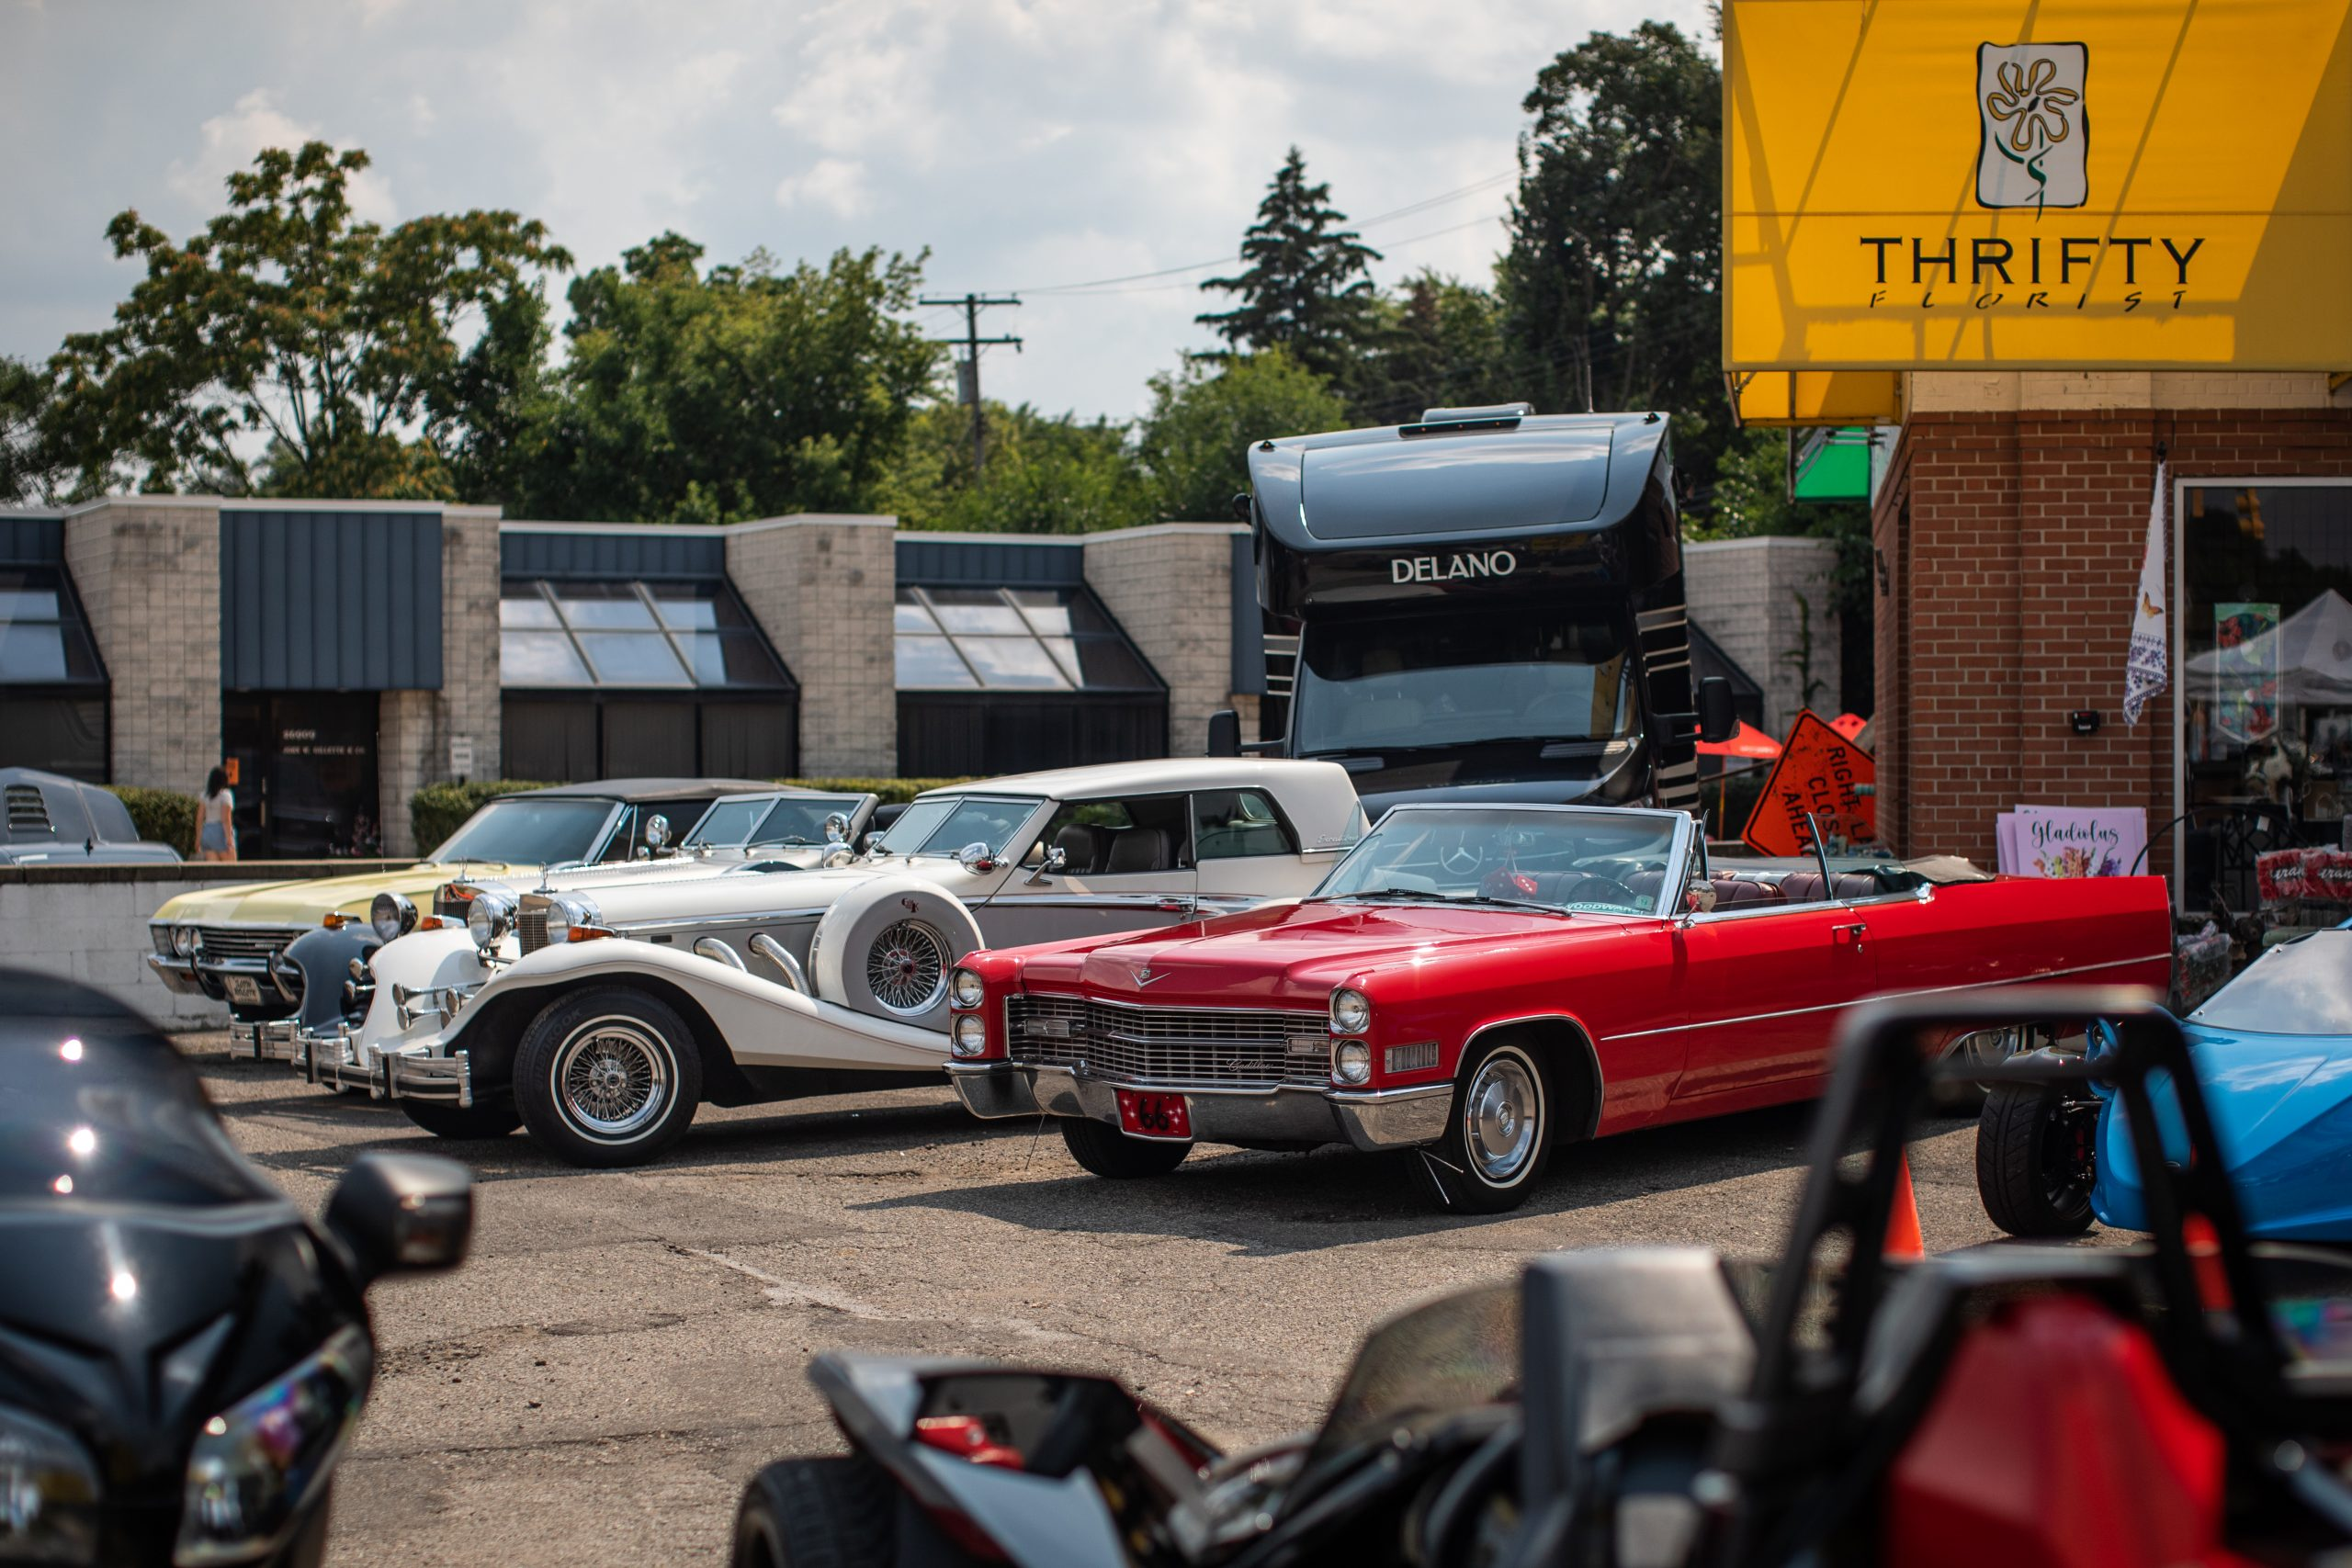 2021 Dream Cruise woodward ave thrifty florist lot